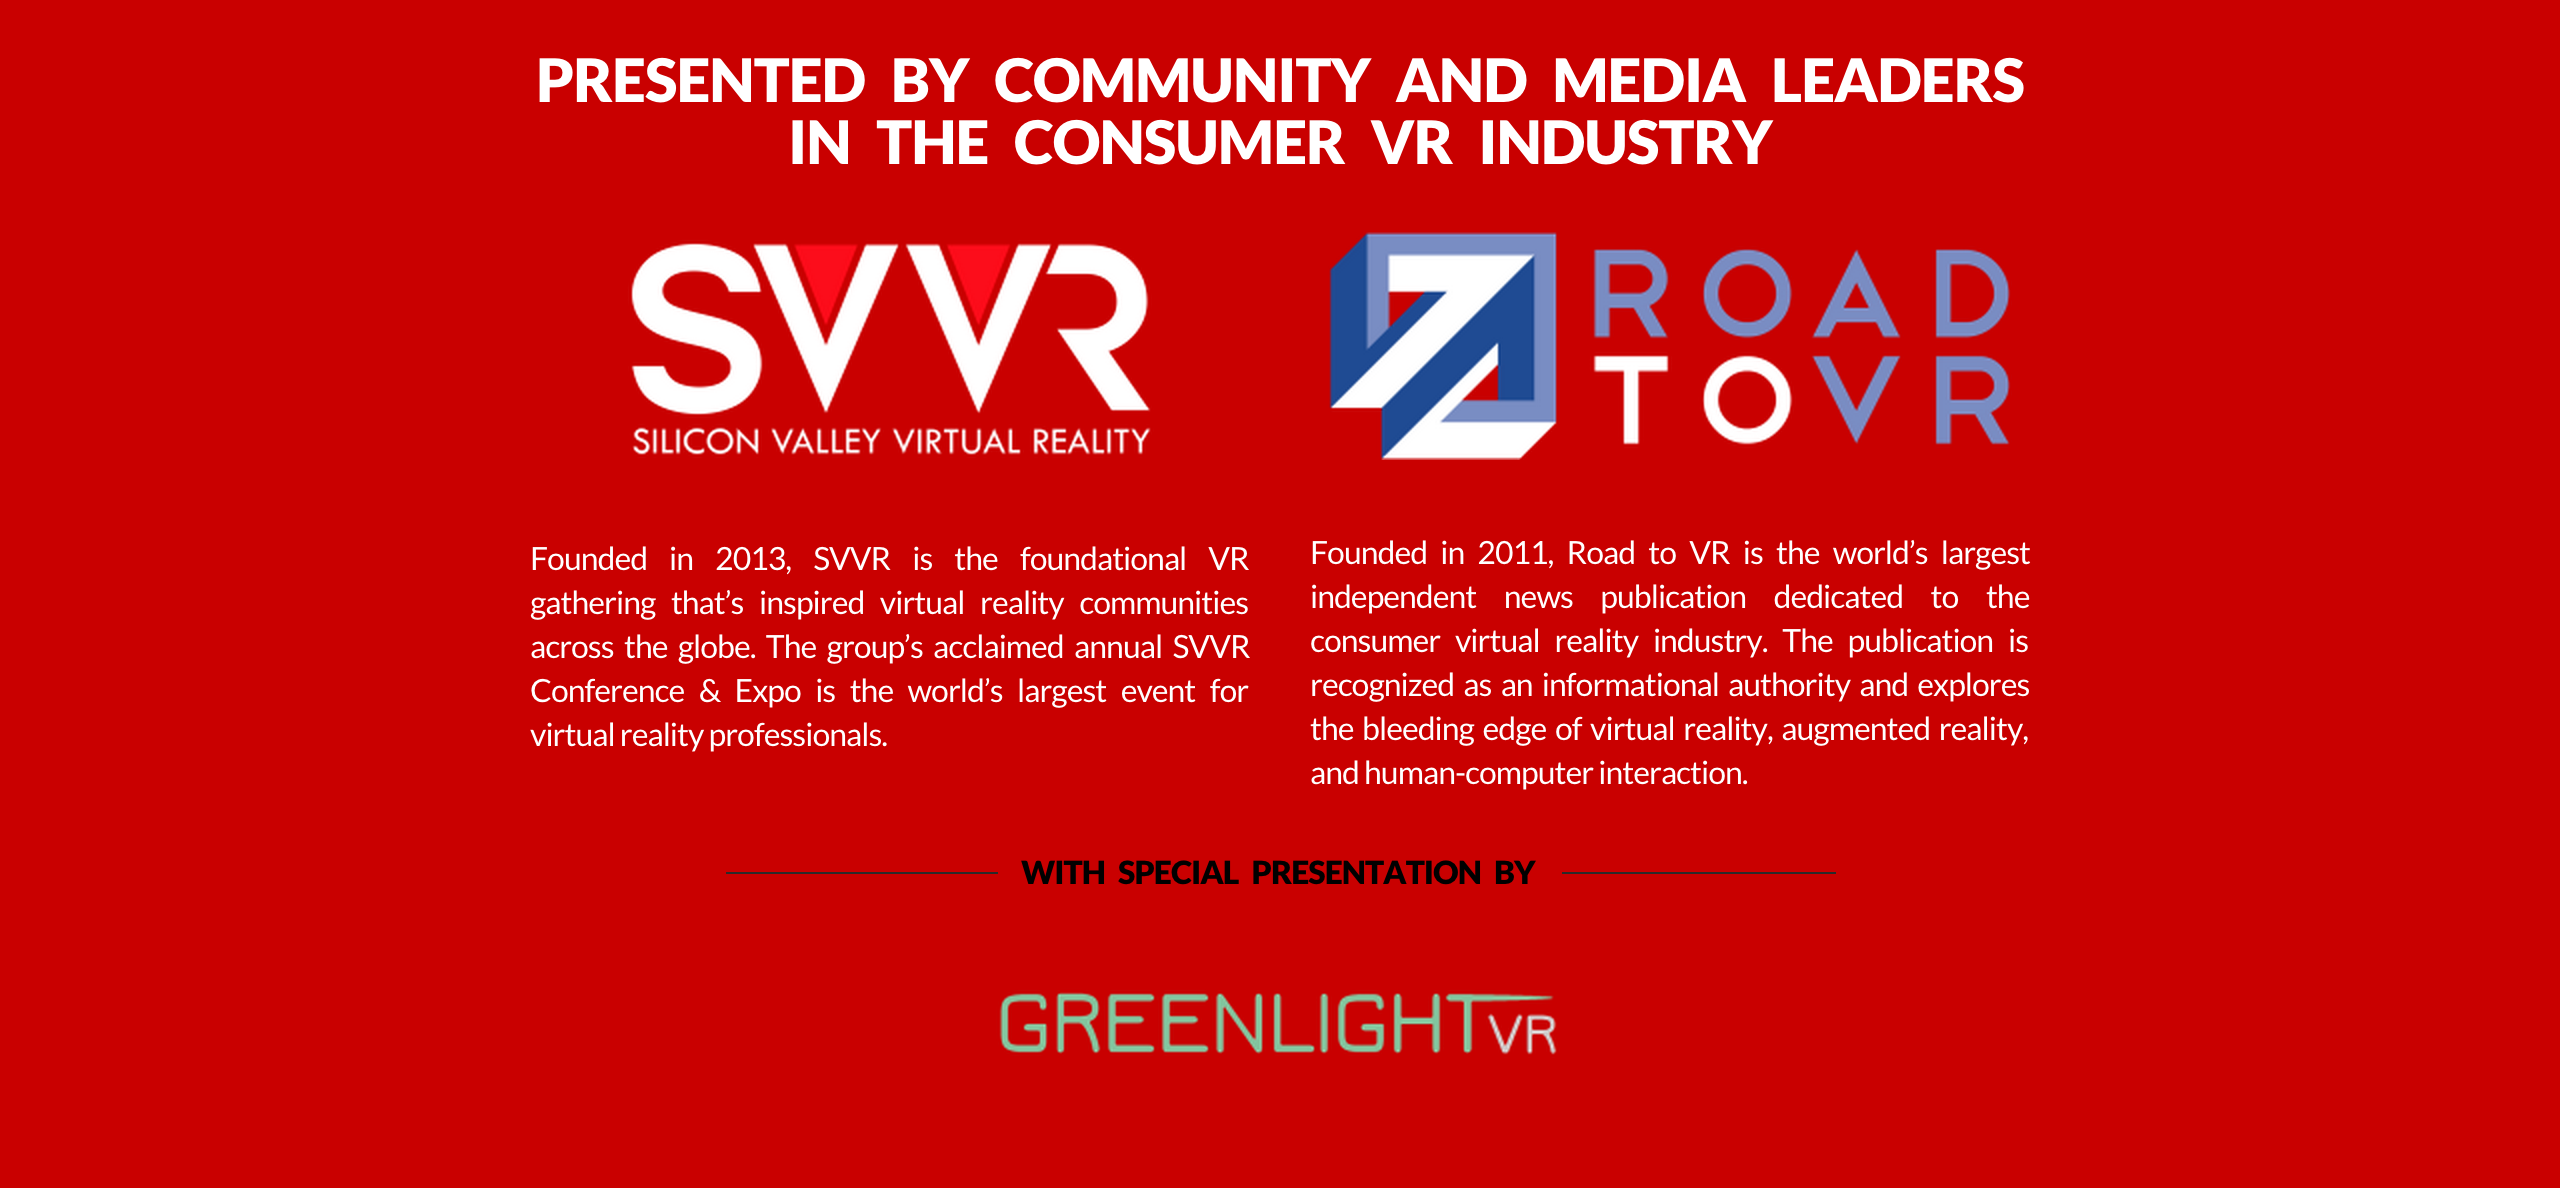 Greenlight VR Keynote SVVR RoadToVR